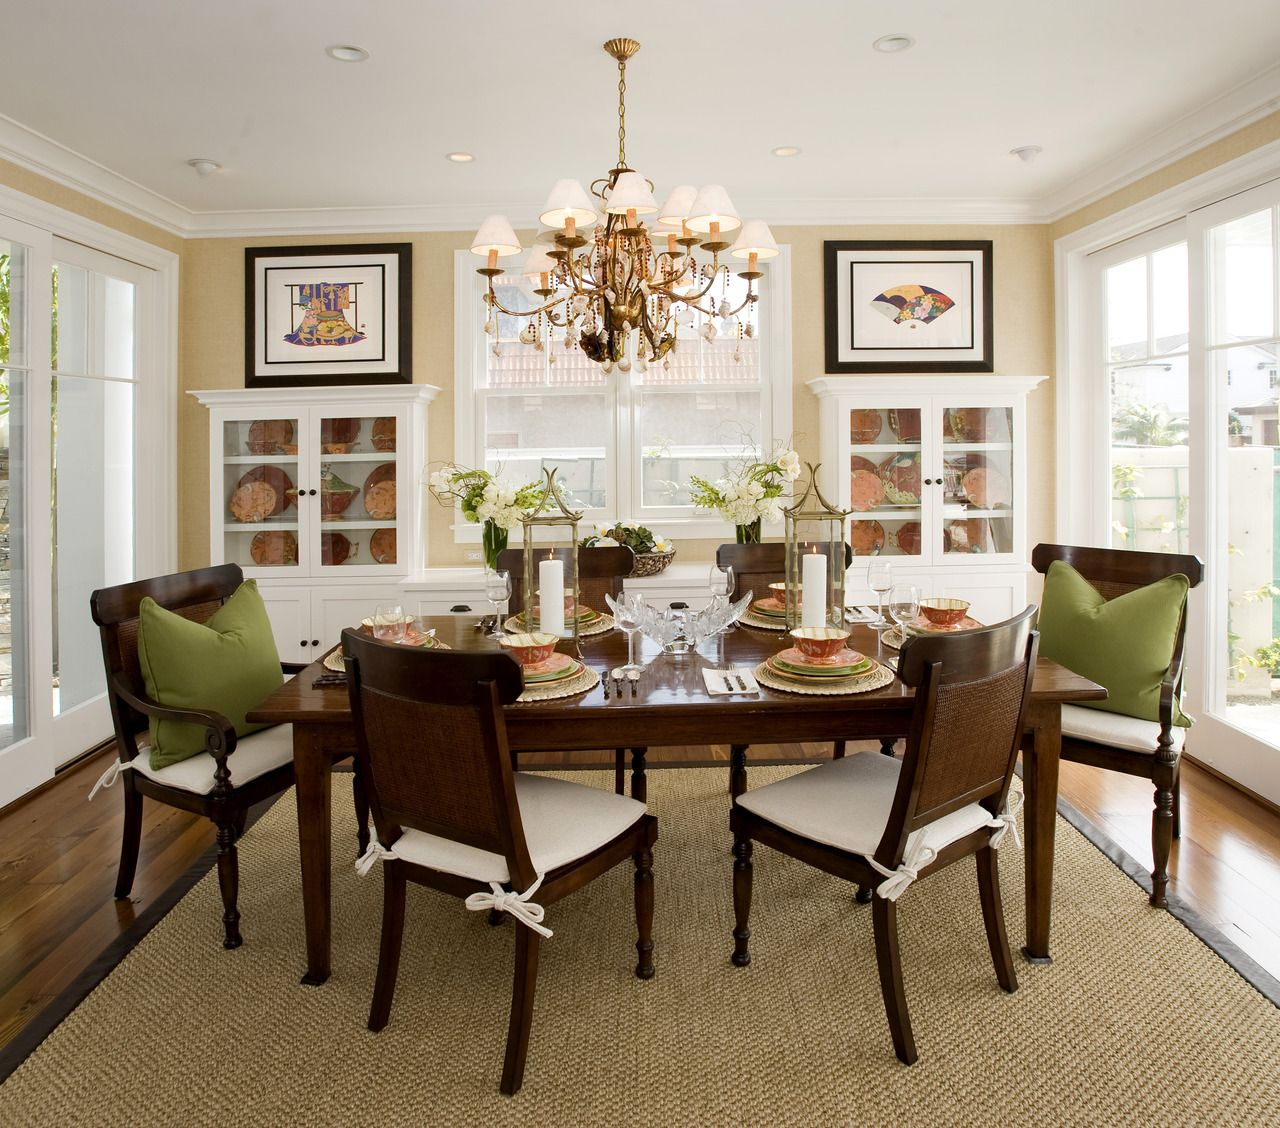 Casual Dining Room Decor Ideas: Stunning Dining Room With A A Soft Color Palette And A